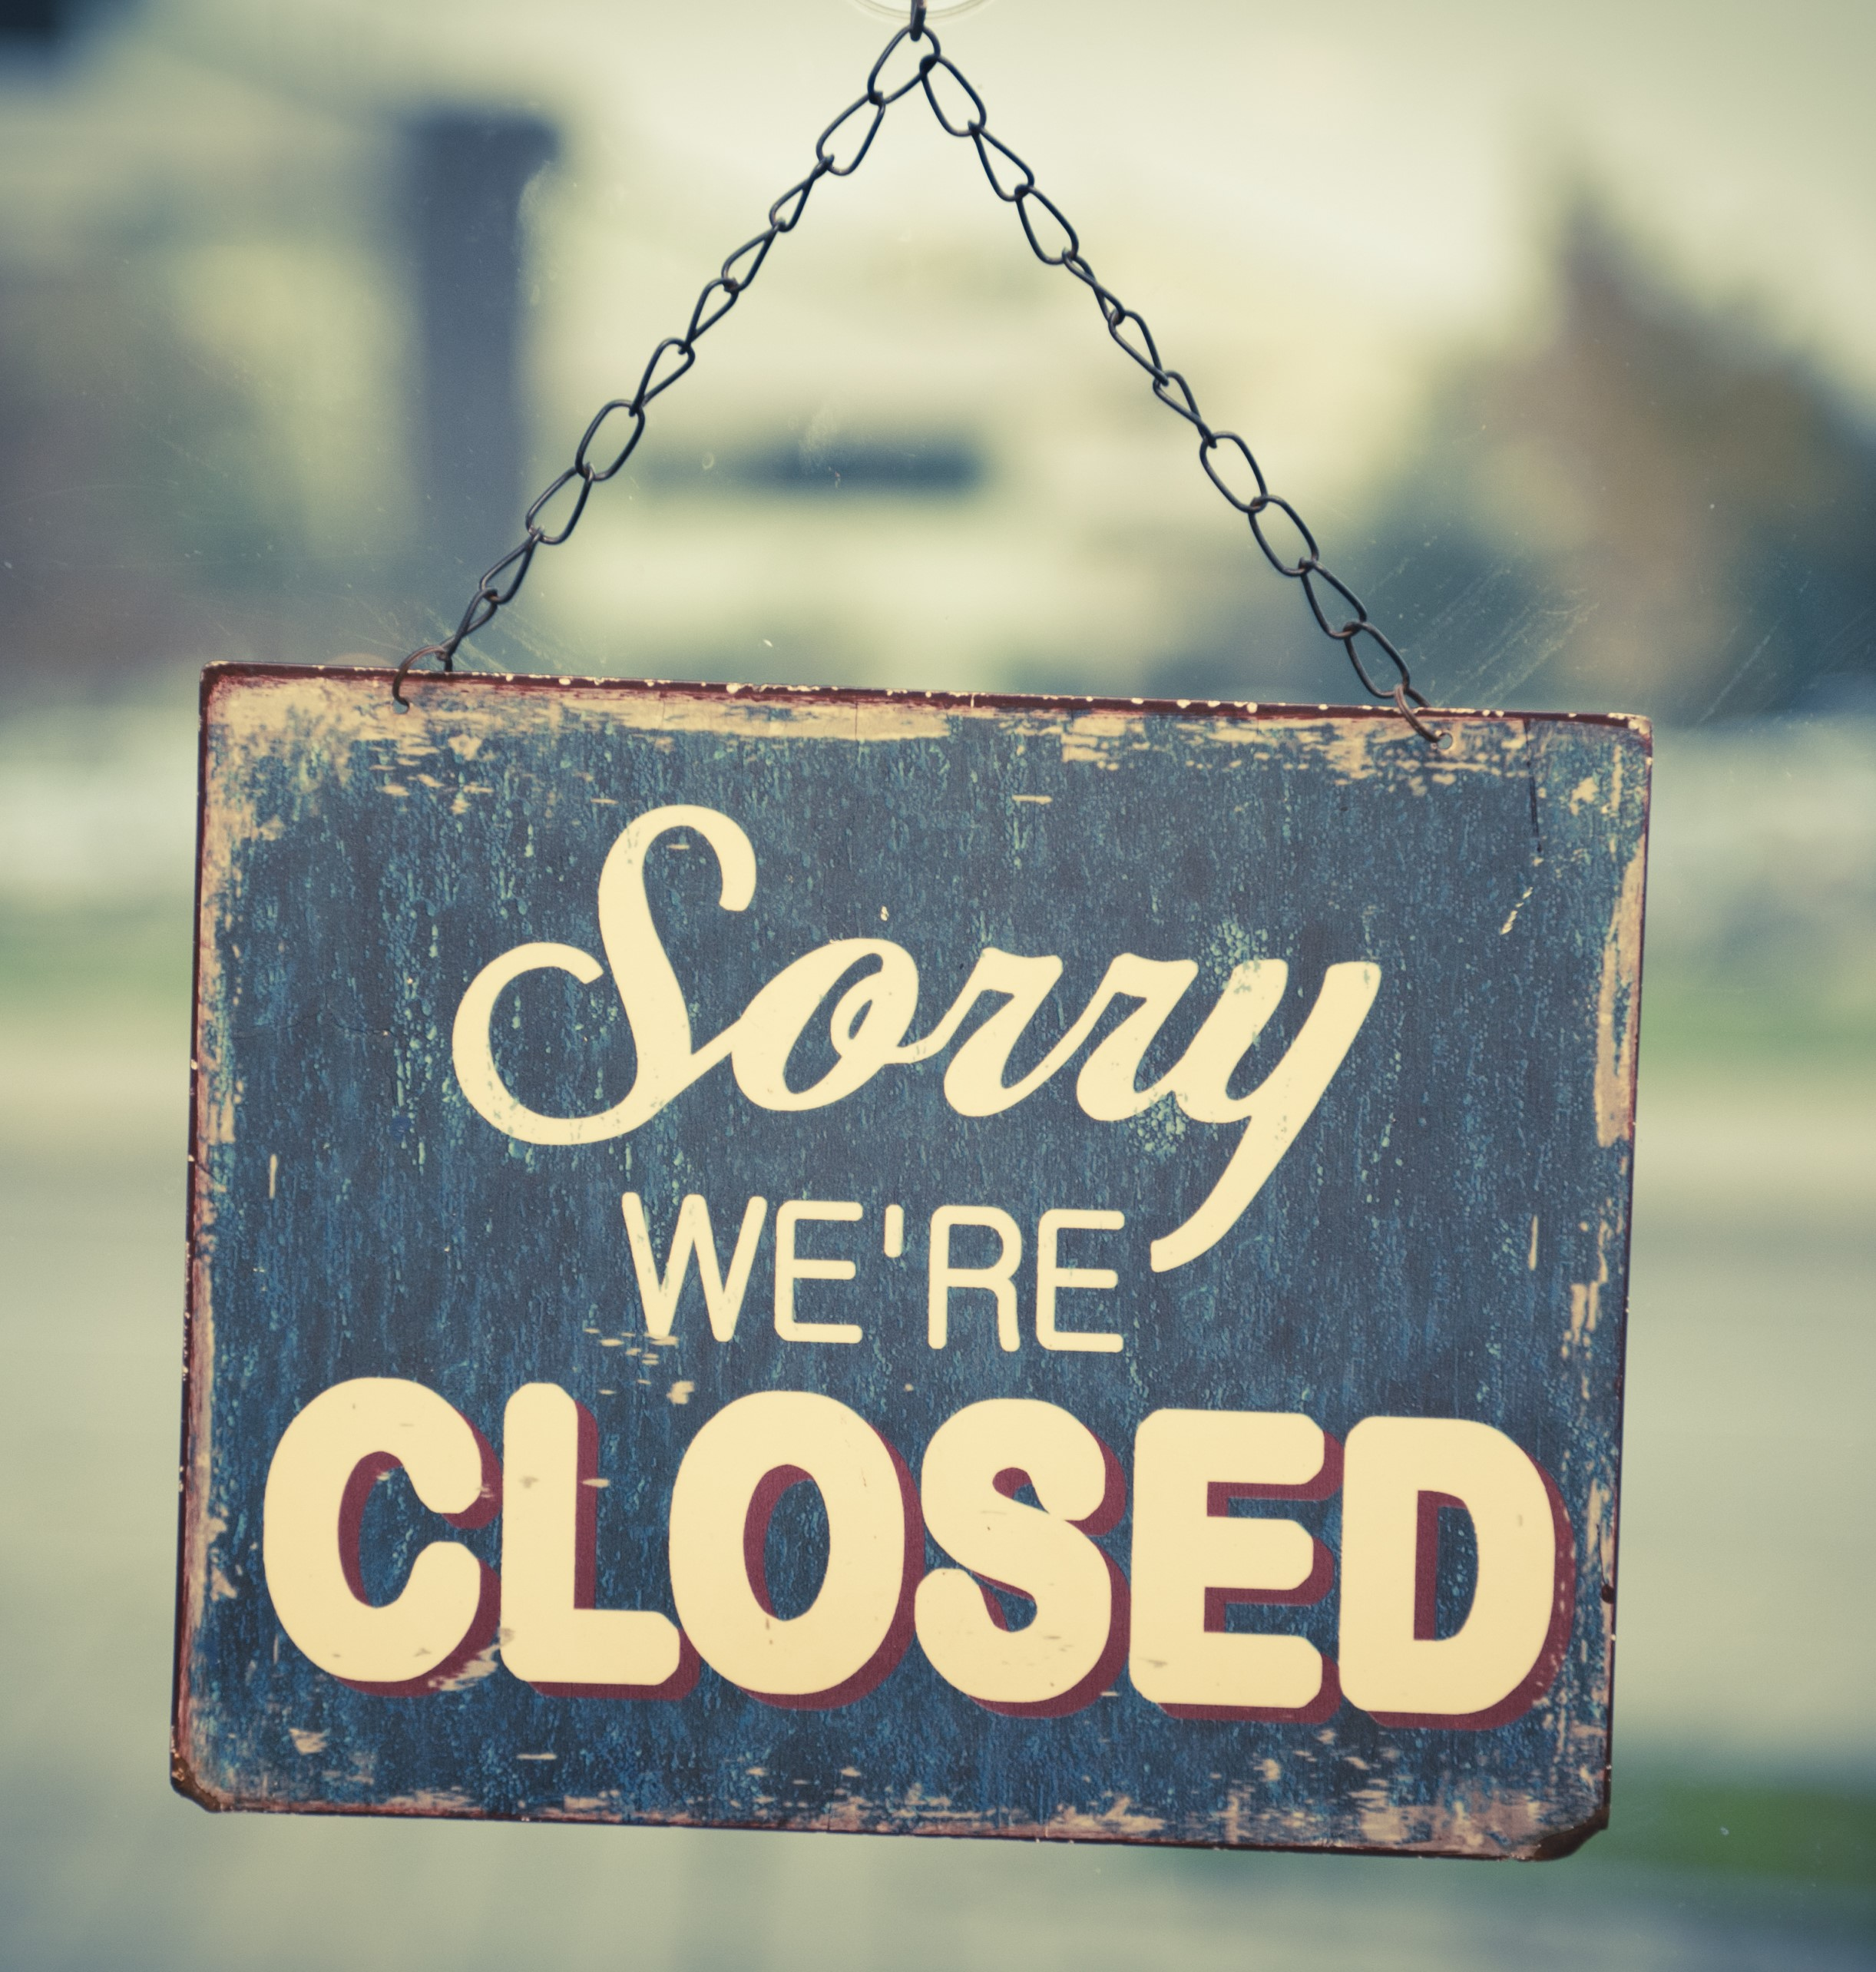 Closed for the Bank Holiday